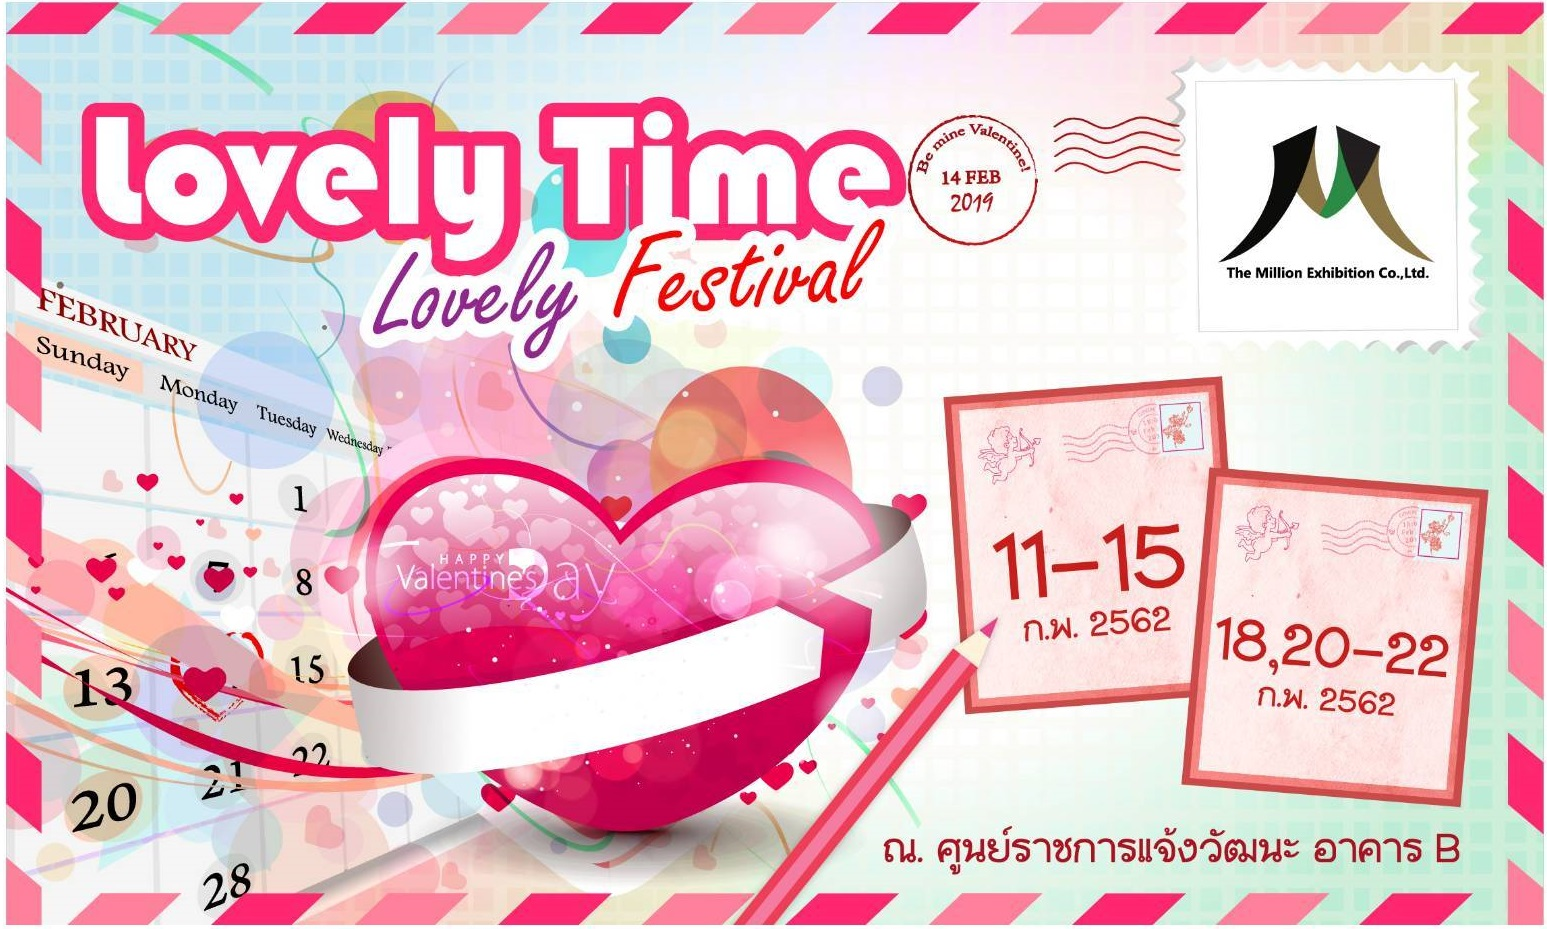 Lovely Time Lovely Festival